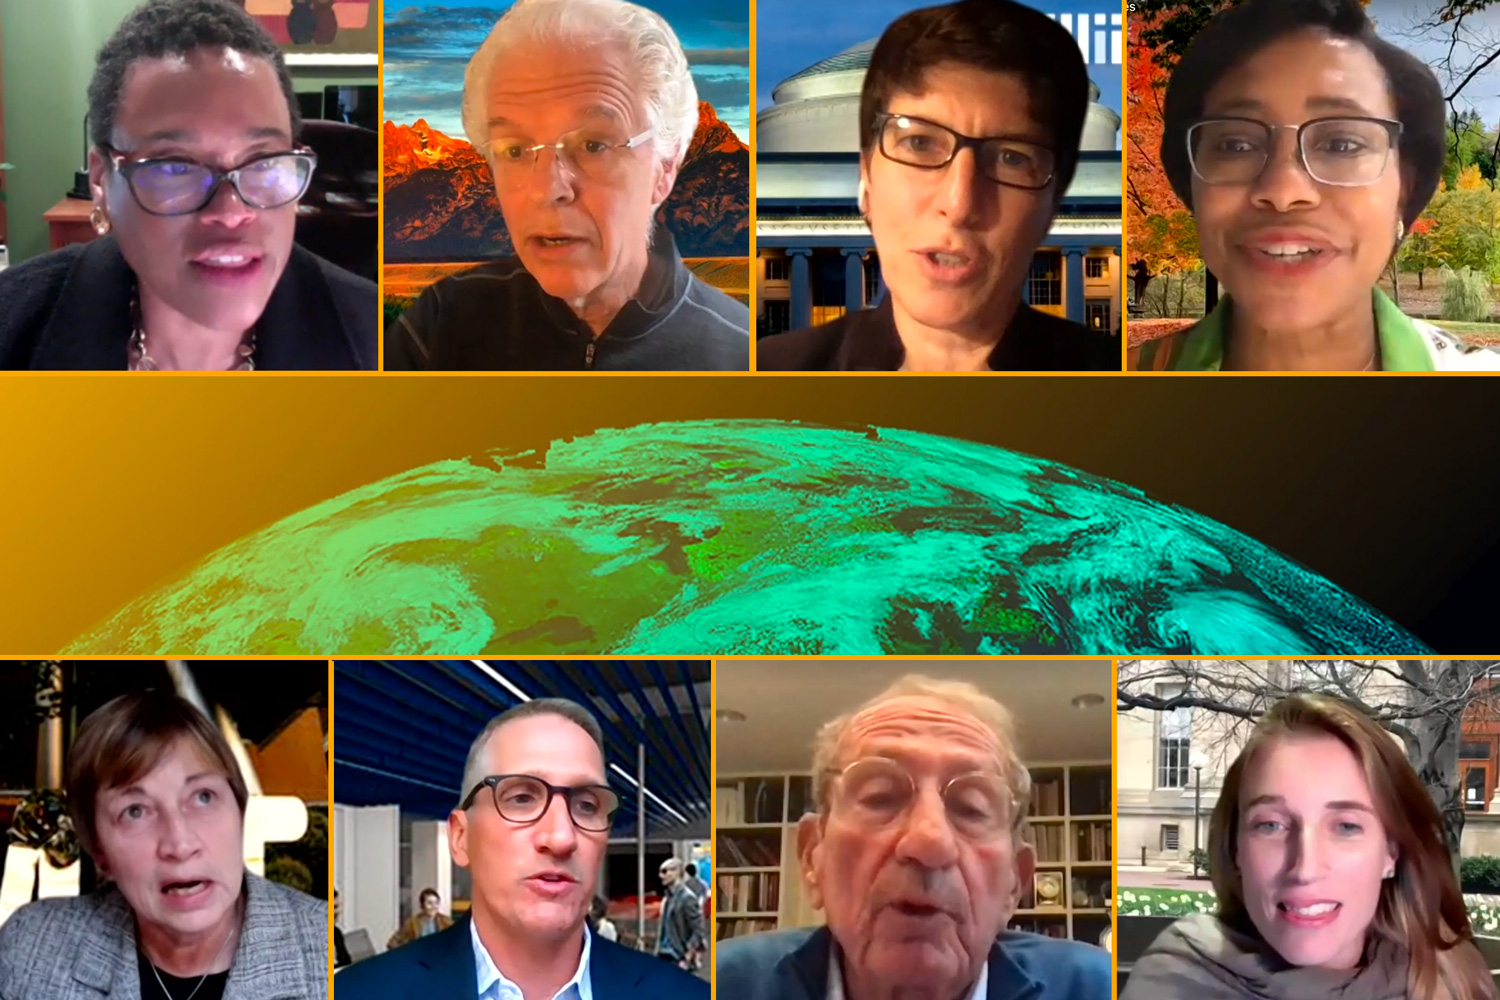 Universities should lead the way on climate action, MIT panelists say